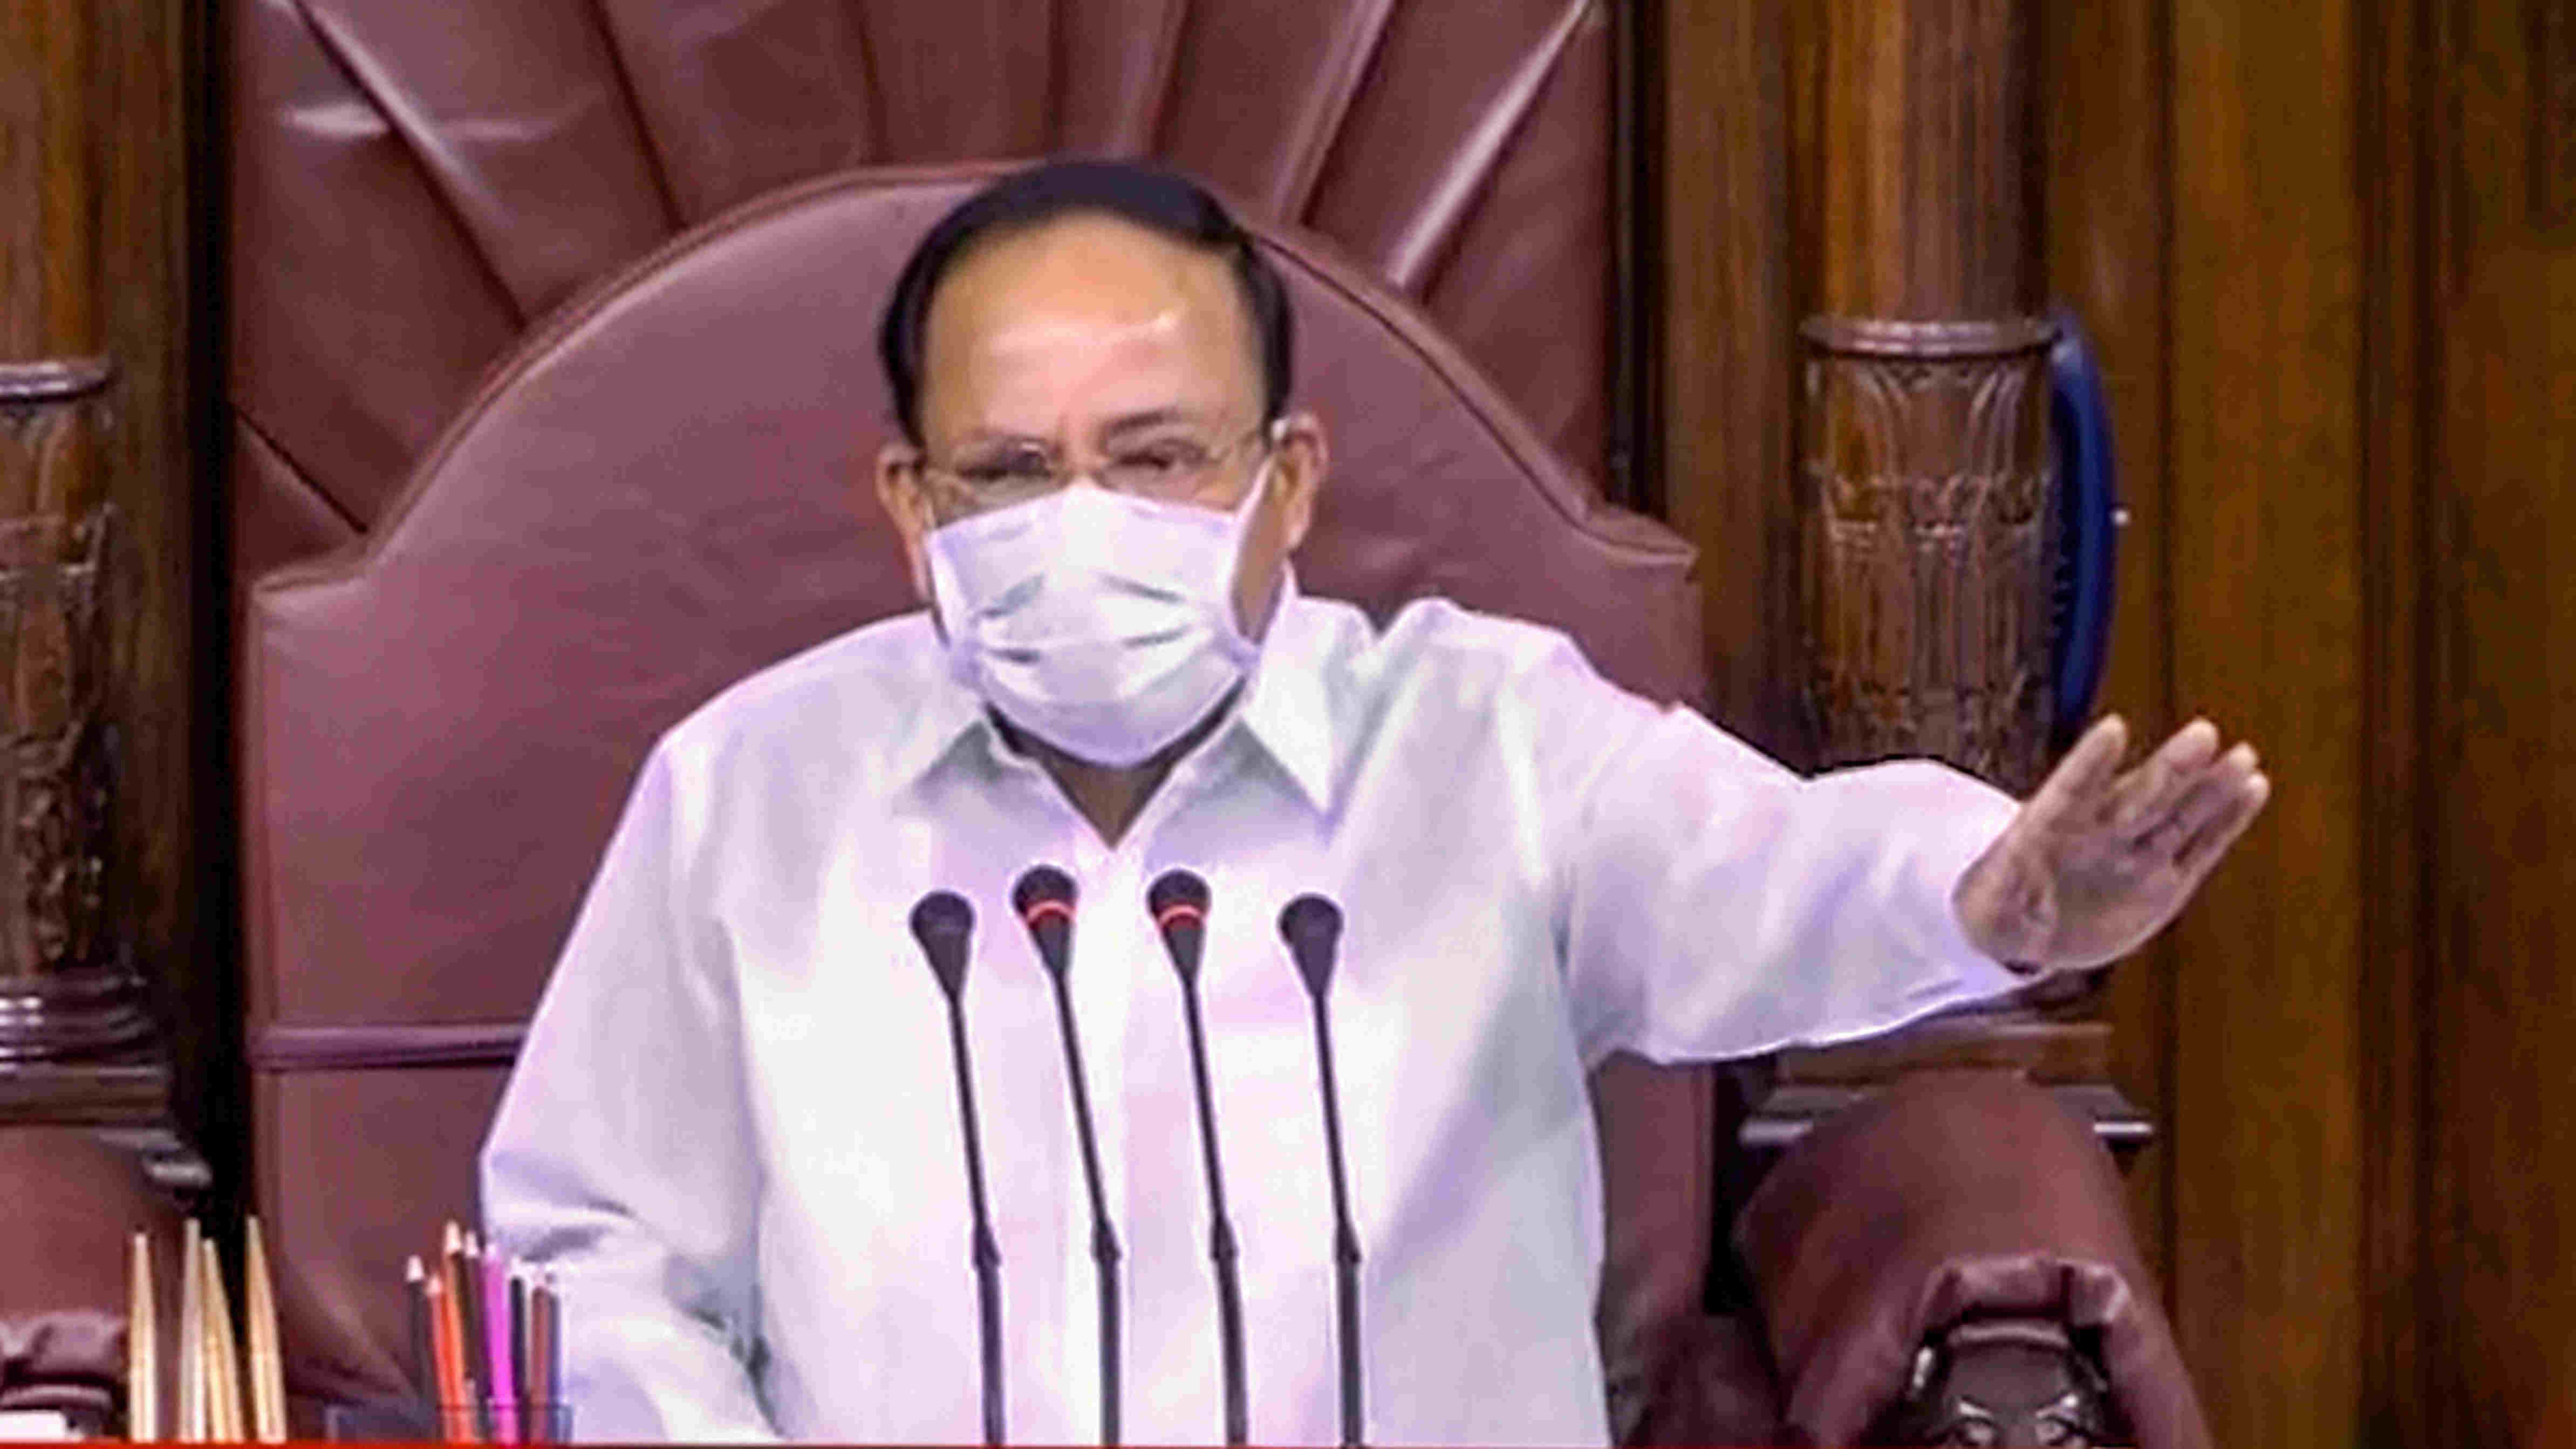 Rajya Sabha Chairman Venkaiah Naidu conducts proceedings in the upper house during the ongoing Monsoon Session of Parliament, at Parliament House in New Delhi, Tuesday , Sept. 22, 2020.